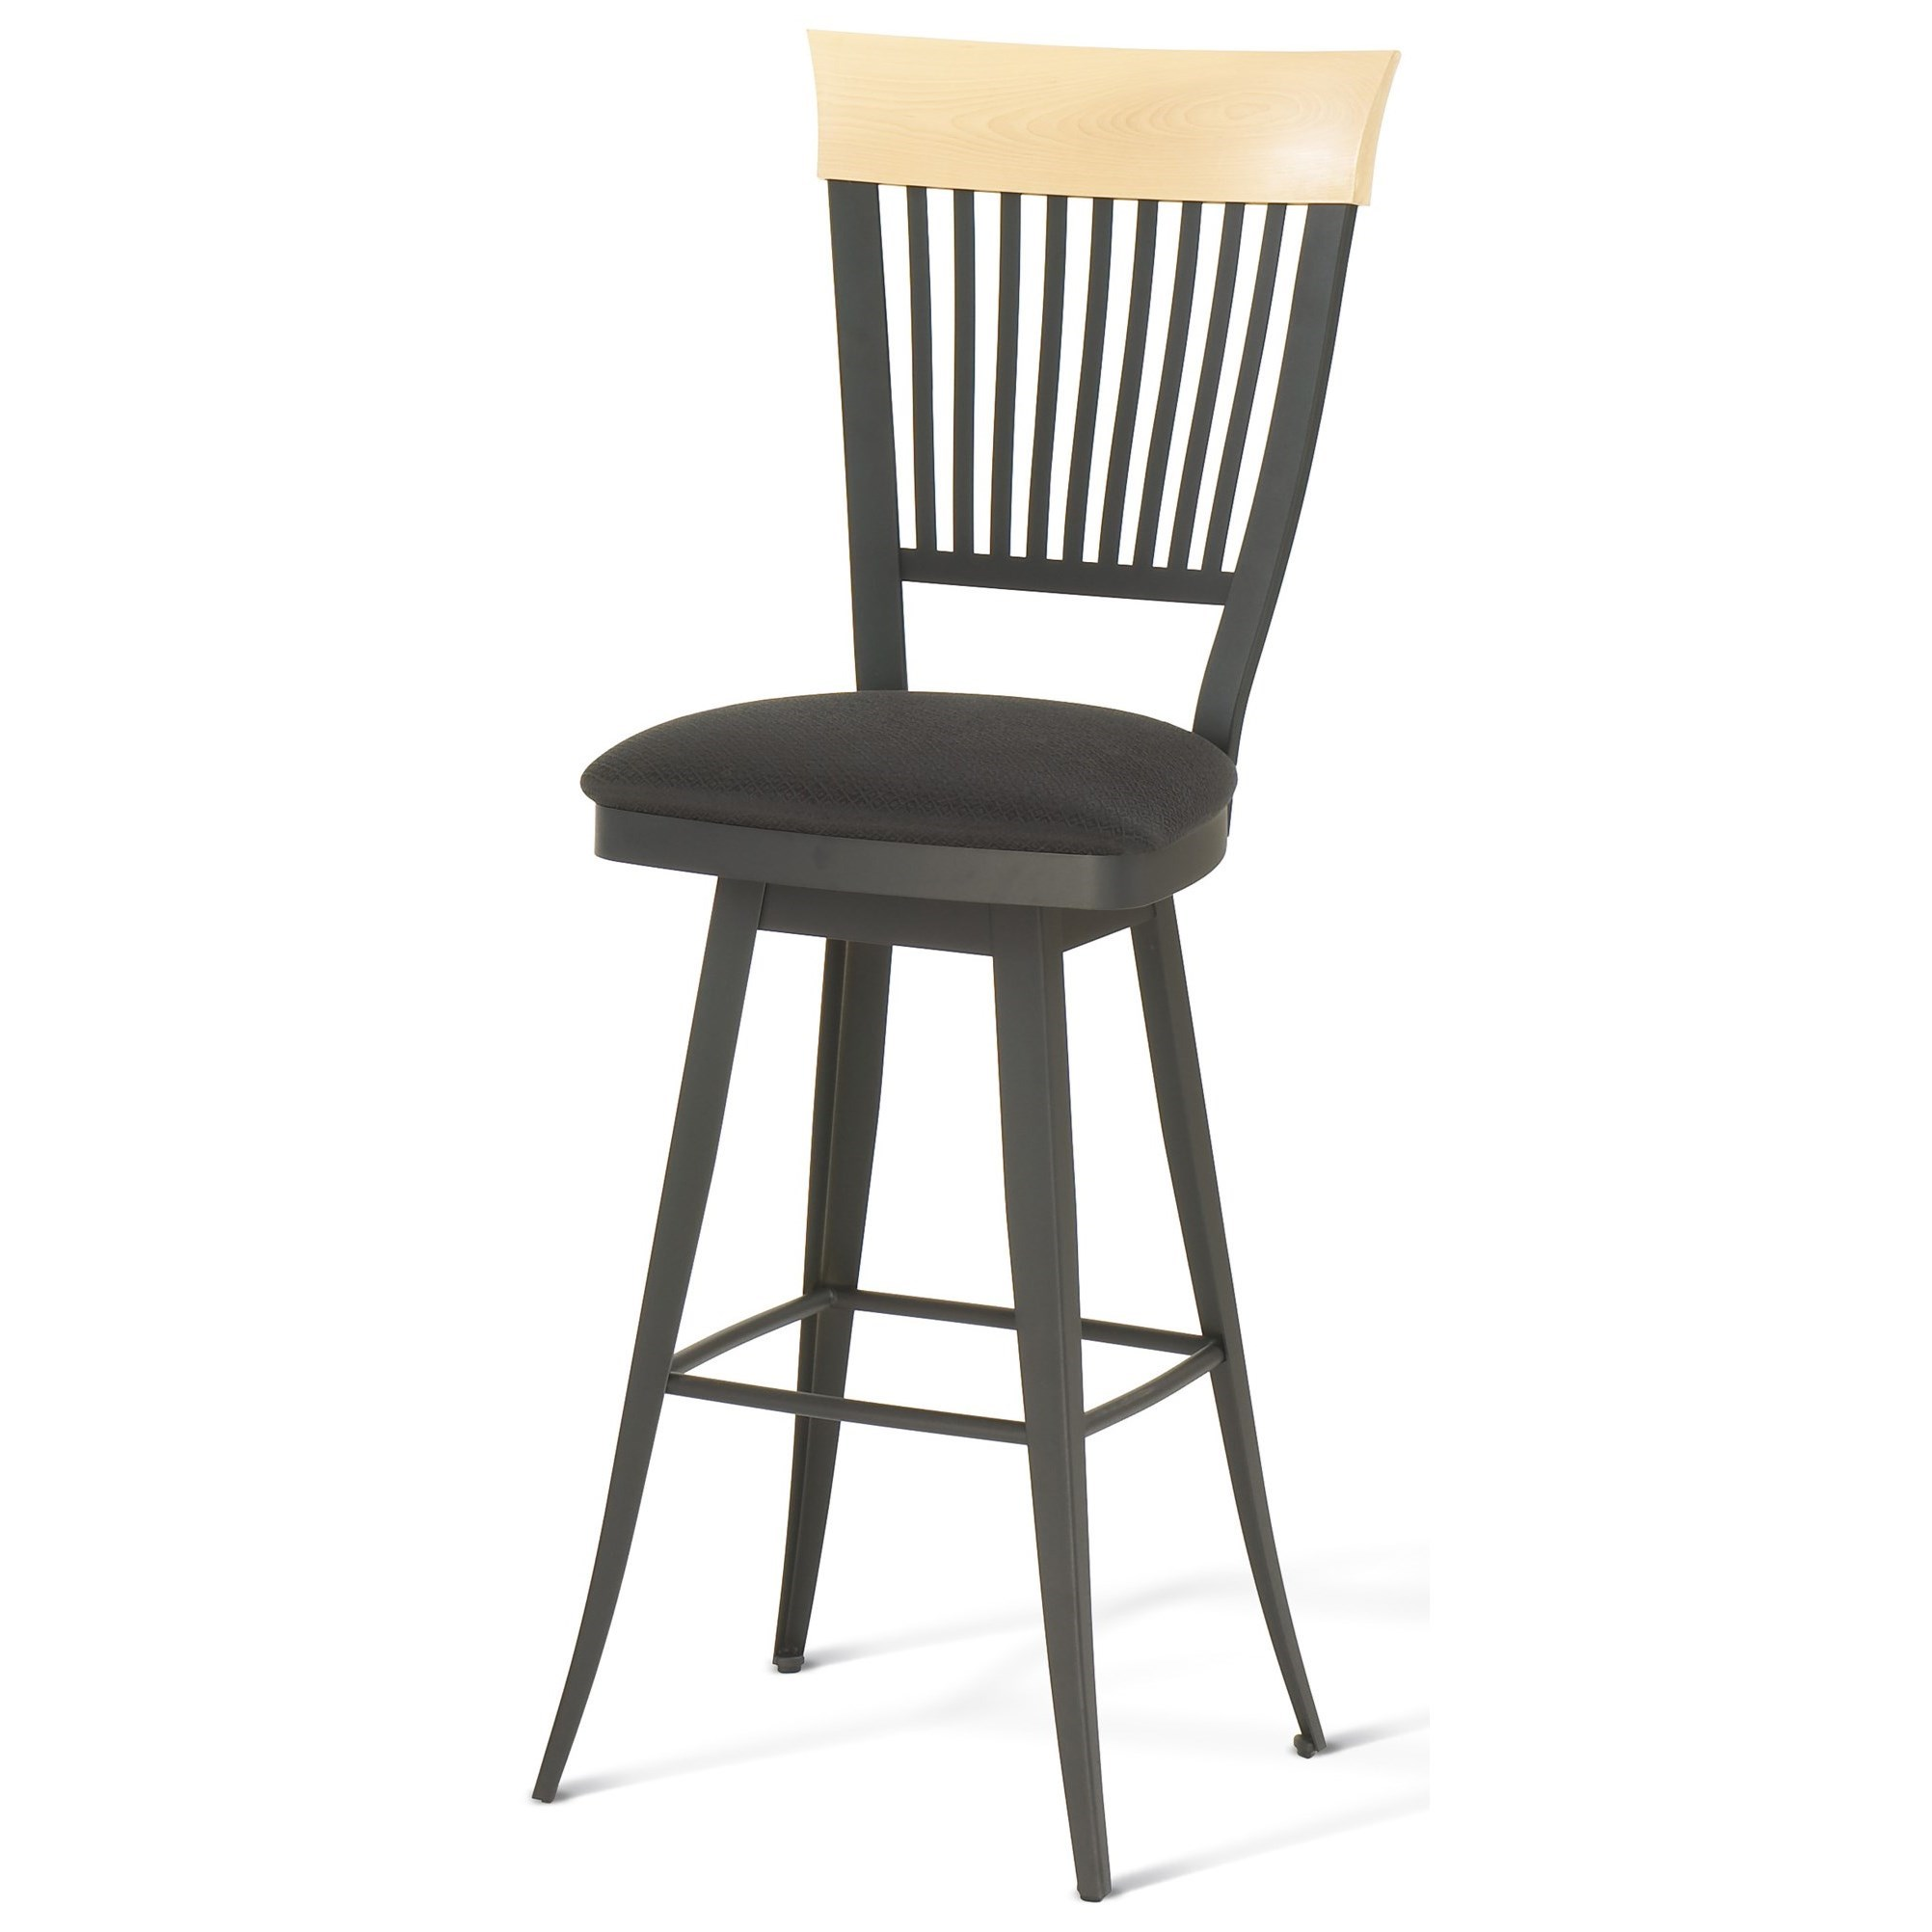 """Countryside 30"""" Annabelle Swivel Bar Stool by Amisco at Dinette Depot"""